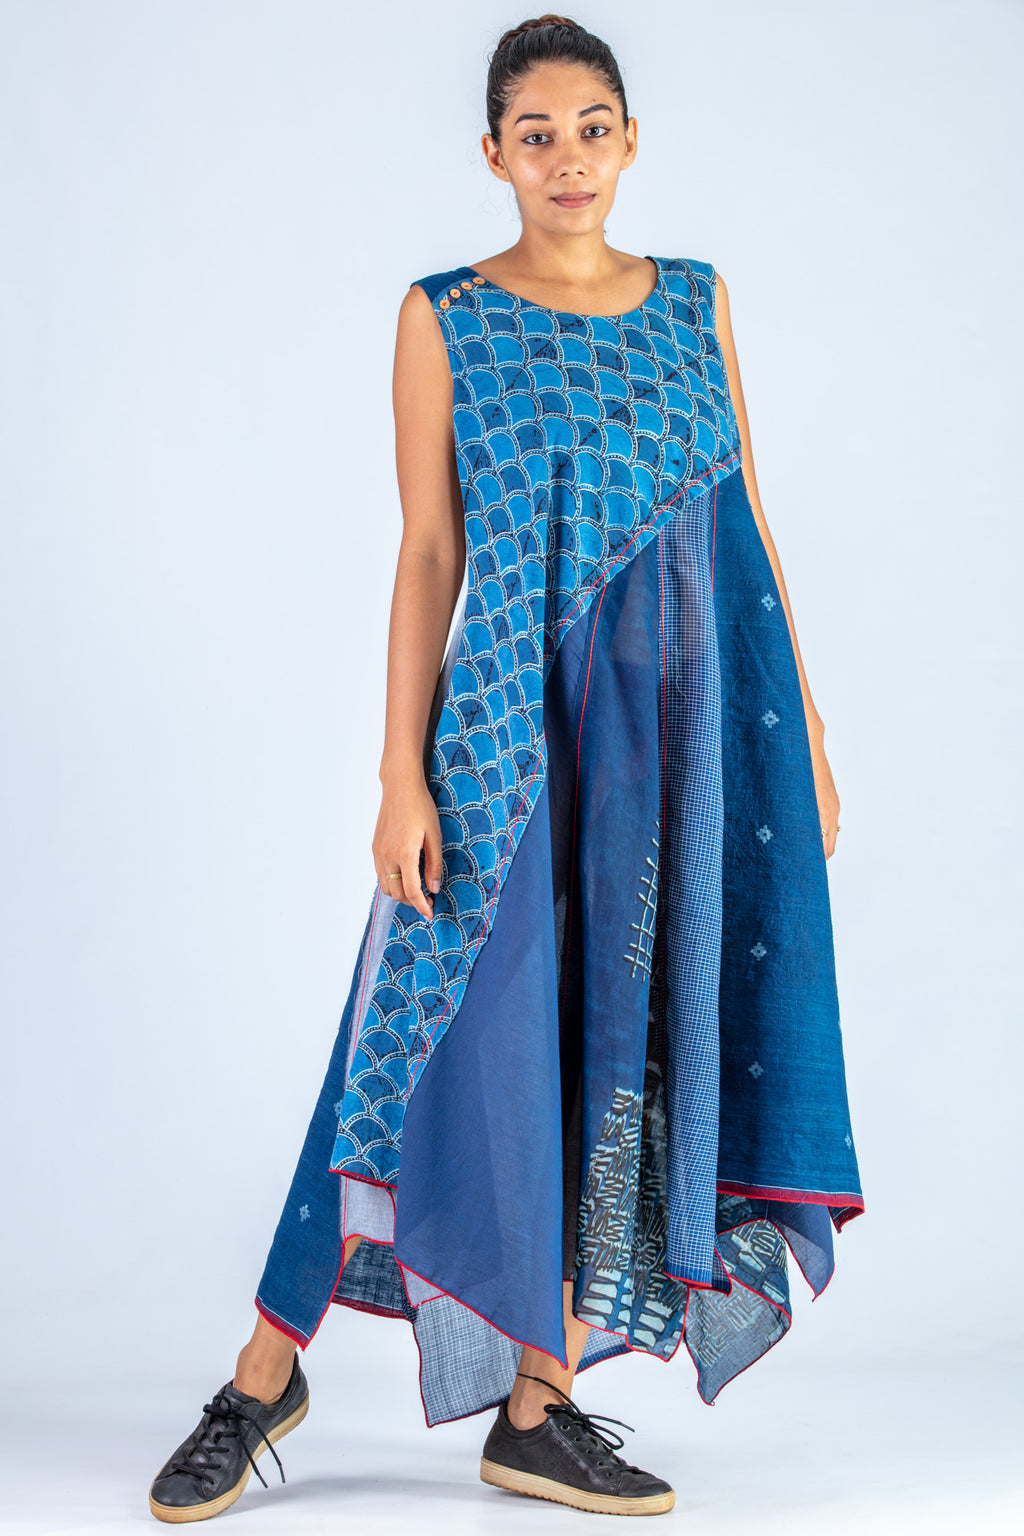 Indigo Upcycled Dress - NAISHA - Upasana Design Studio